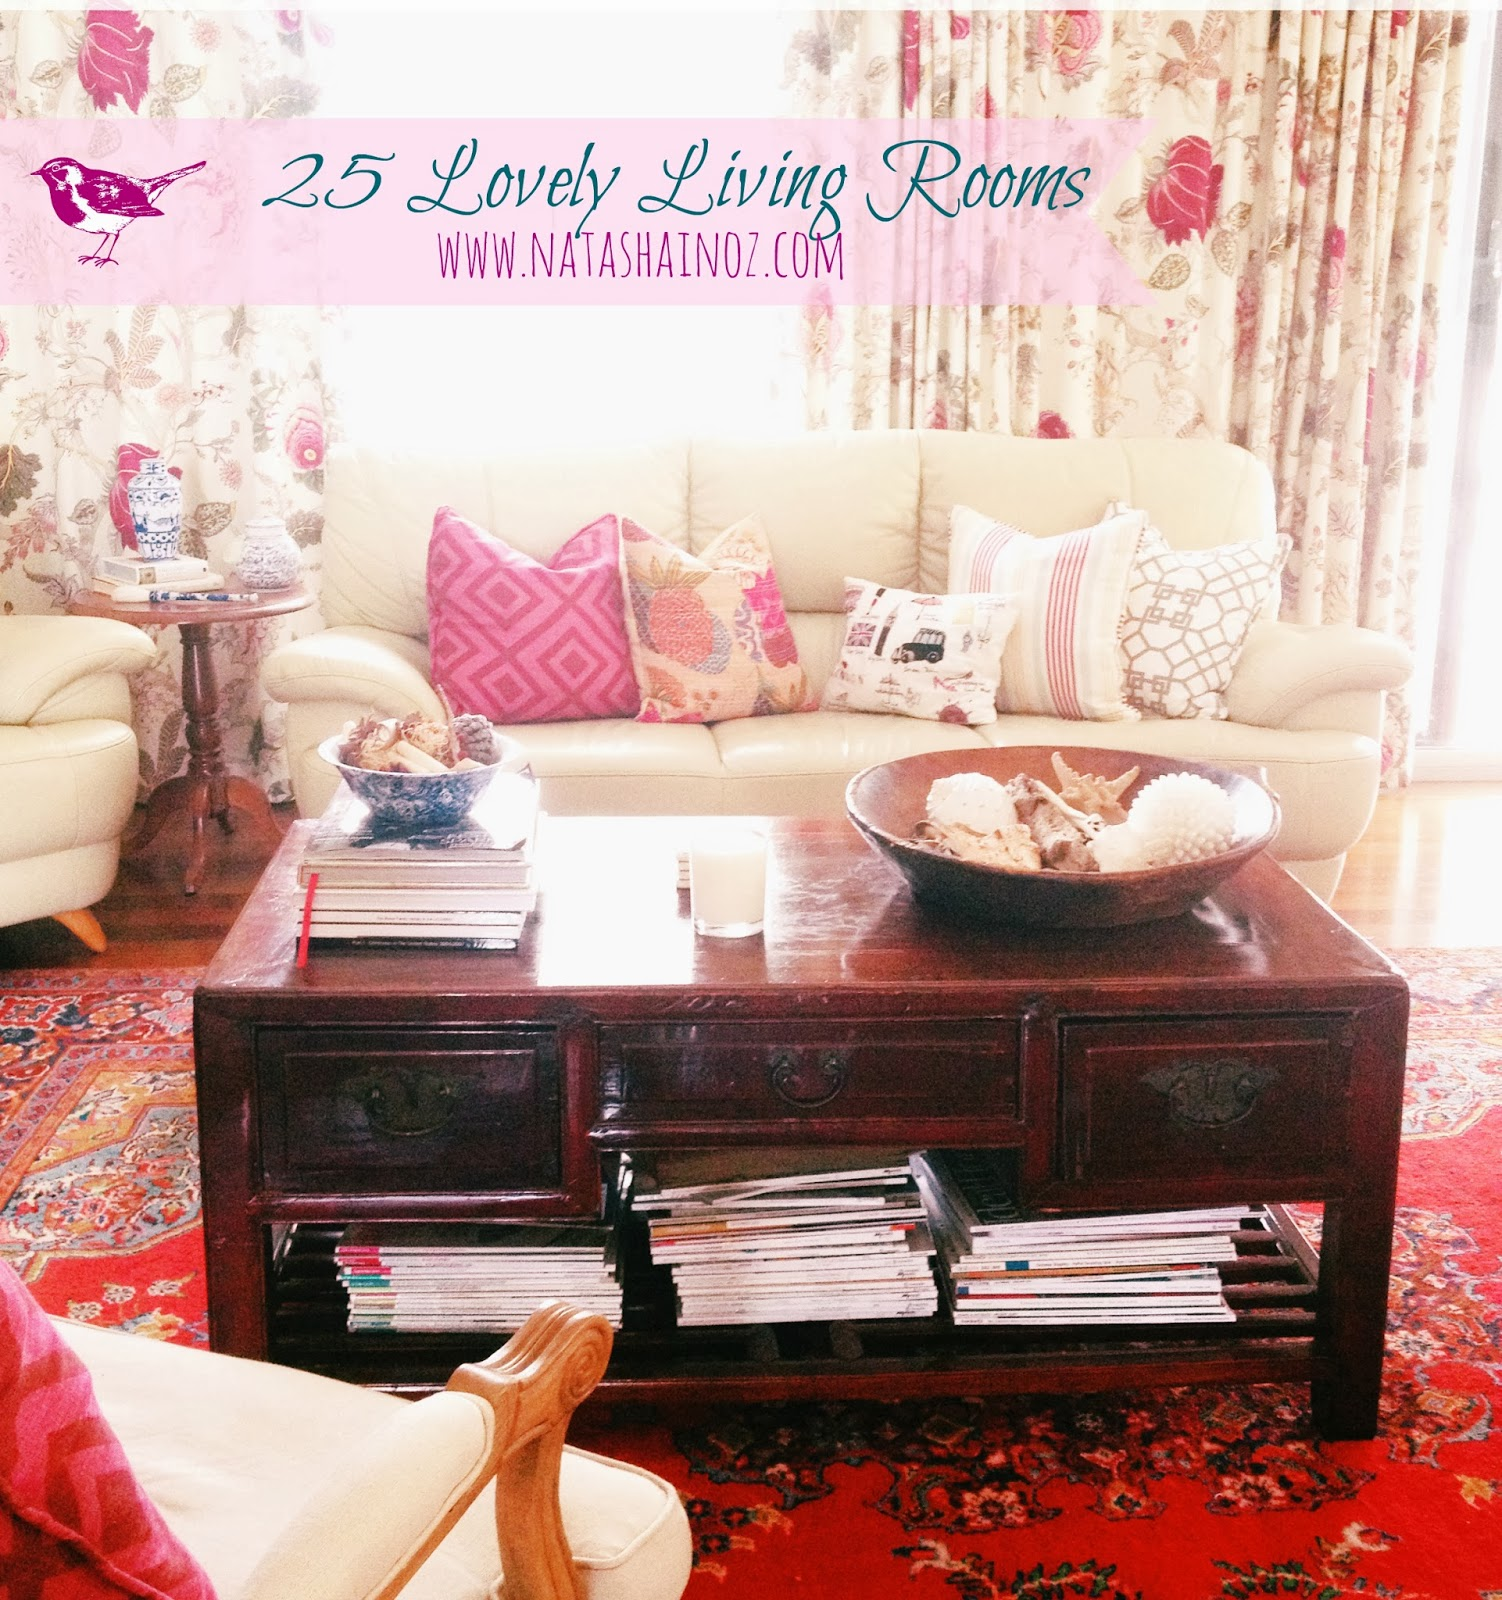 25 Lovely Living Rooms, Lounge Room